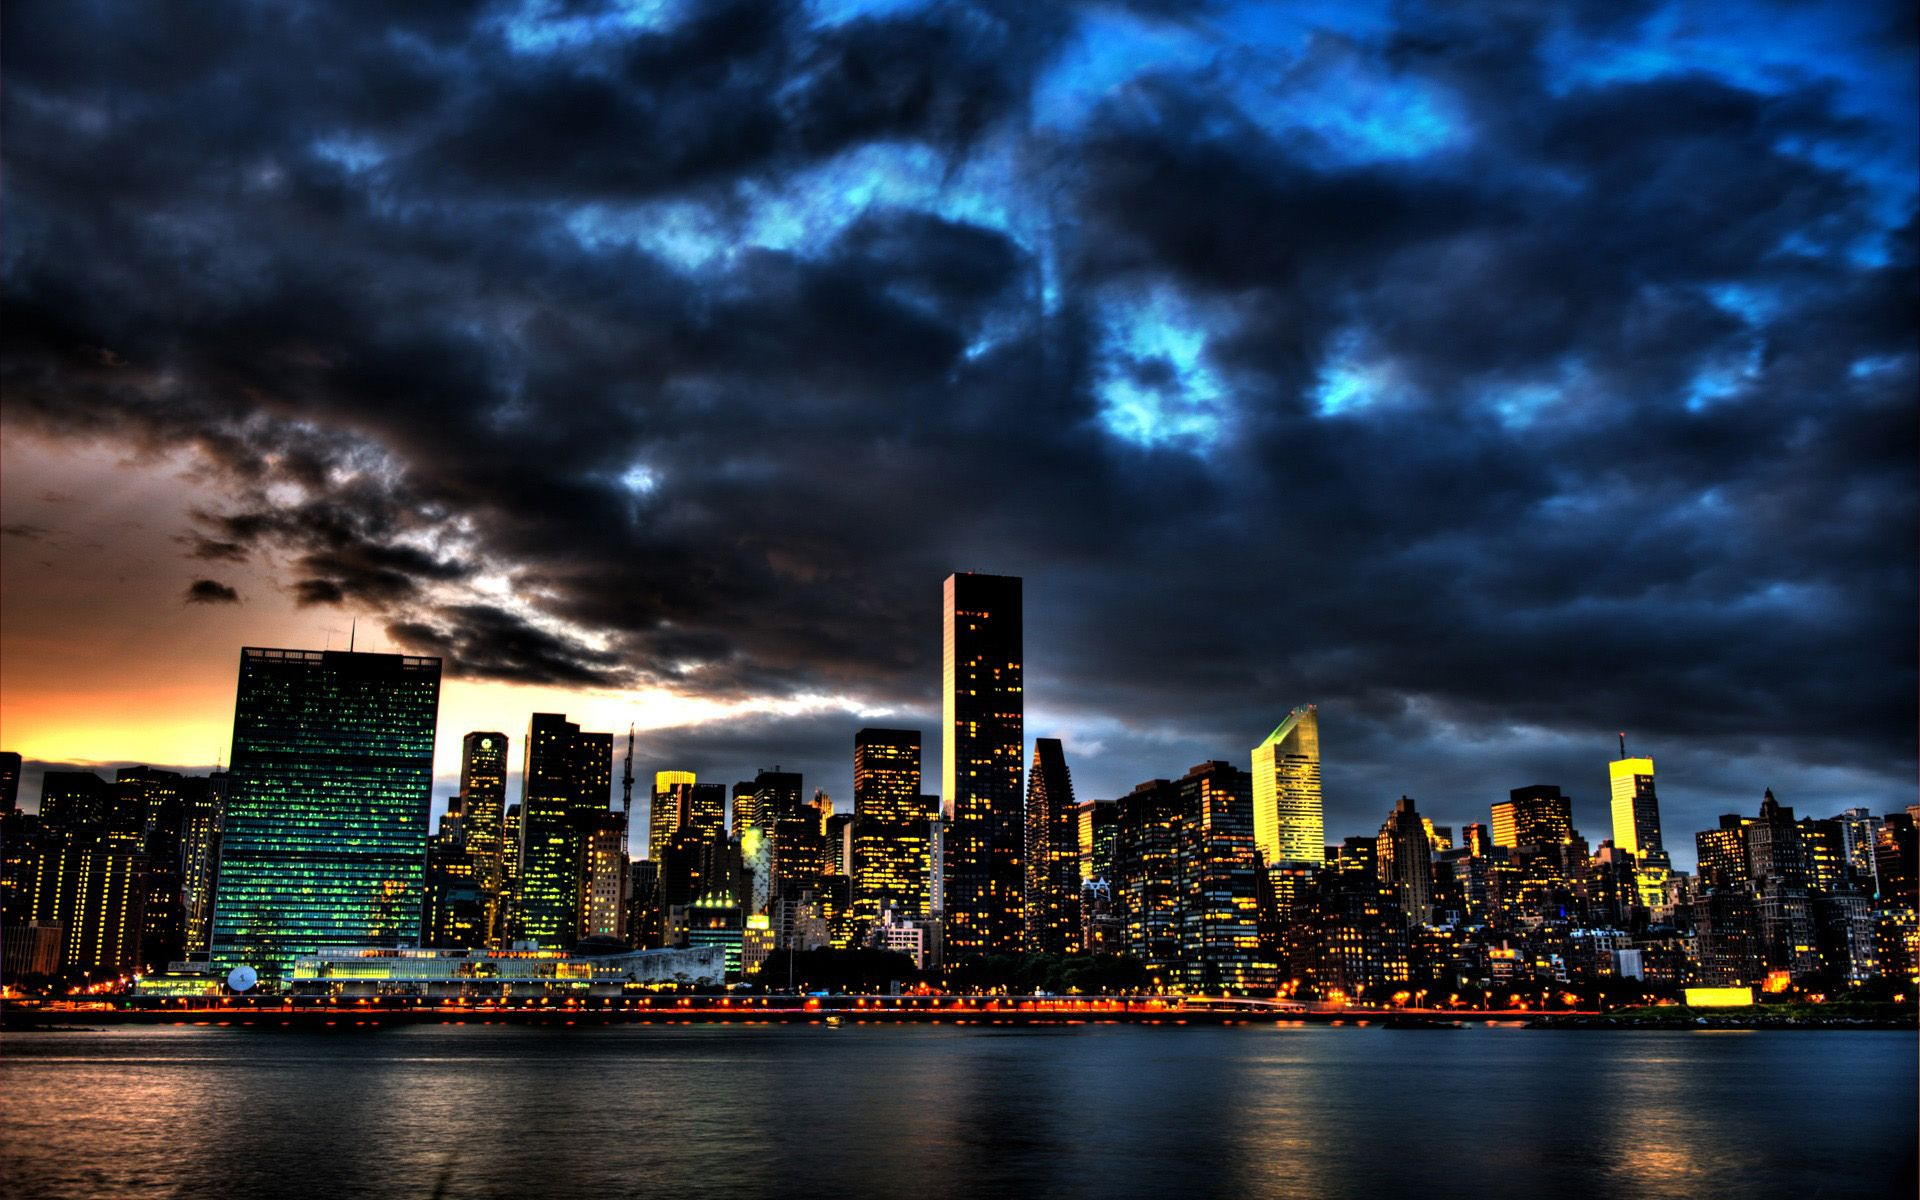 New York Skyline At Night Wallpaper Hd 5 City With Images New